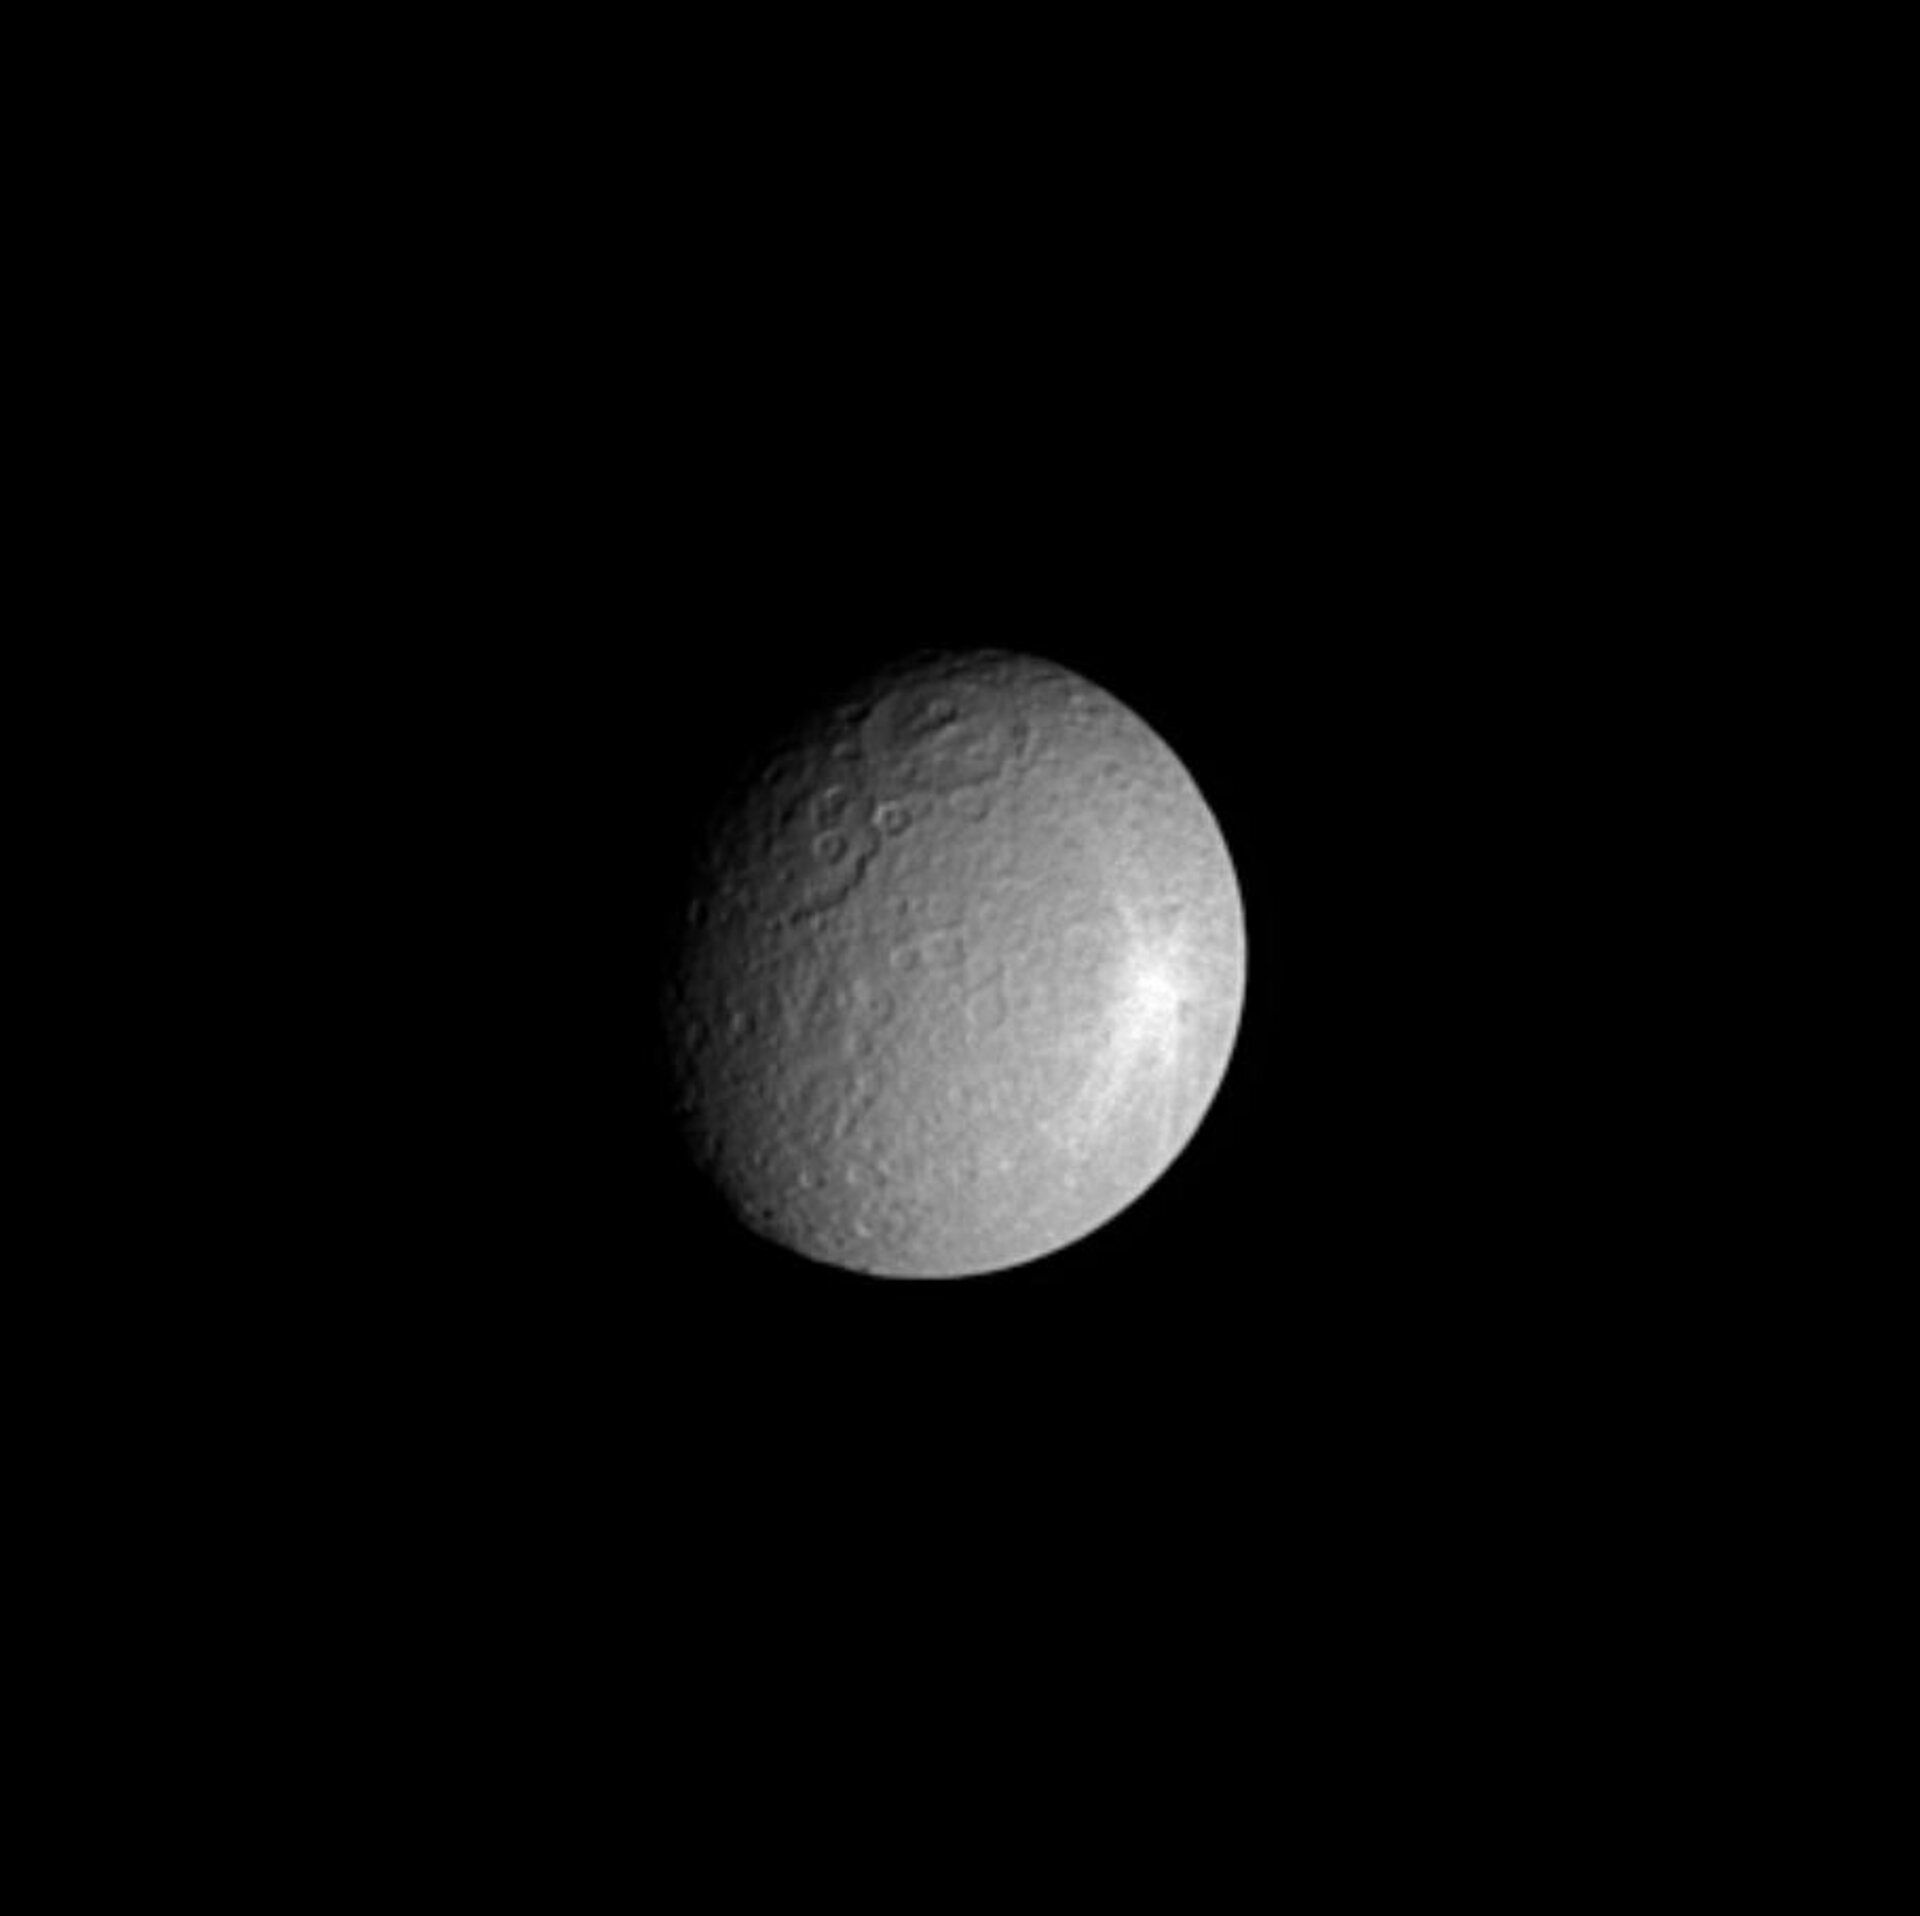 Impact crater on Saturn's moon Rhea